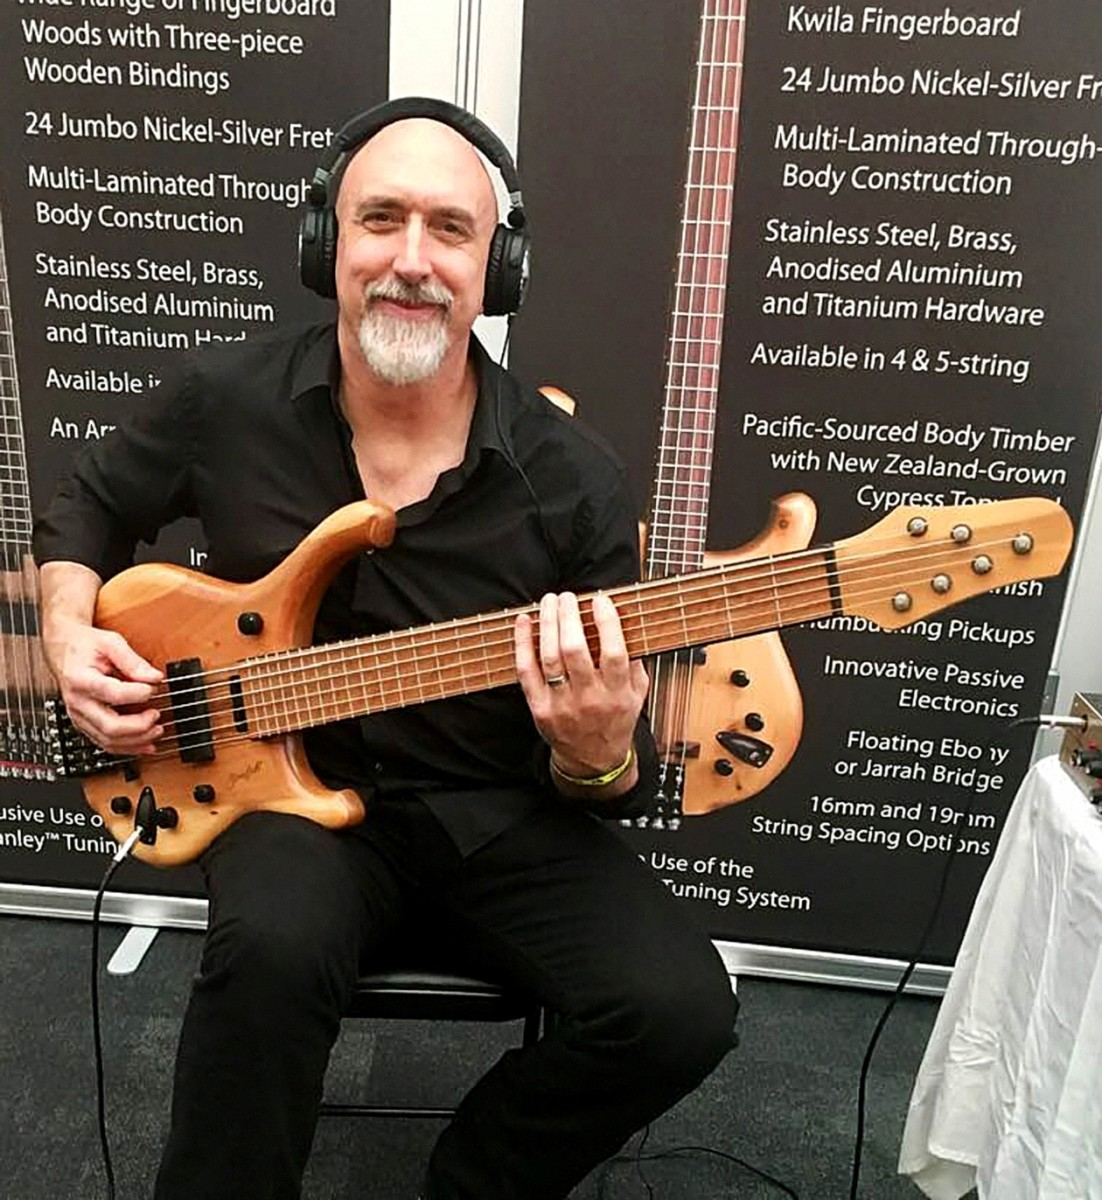 Dave Smith playing a Stonefield bass